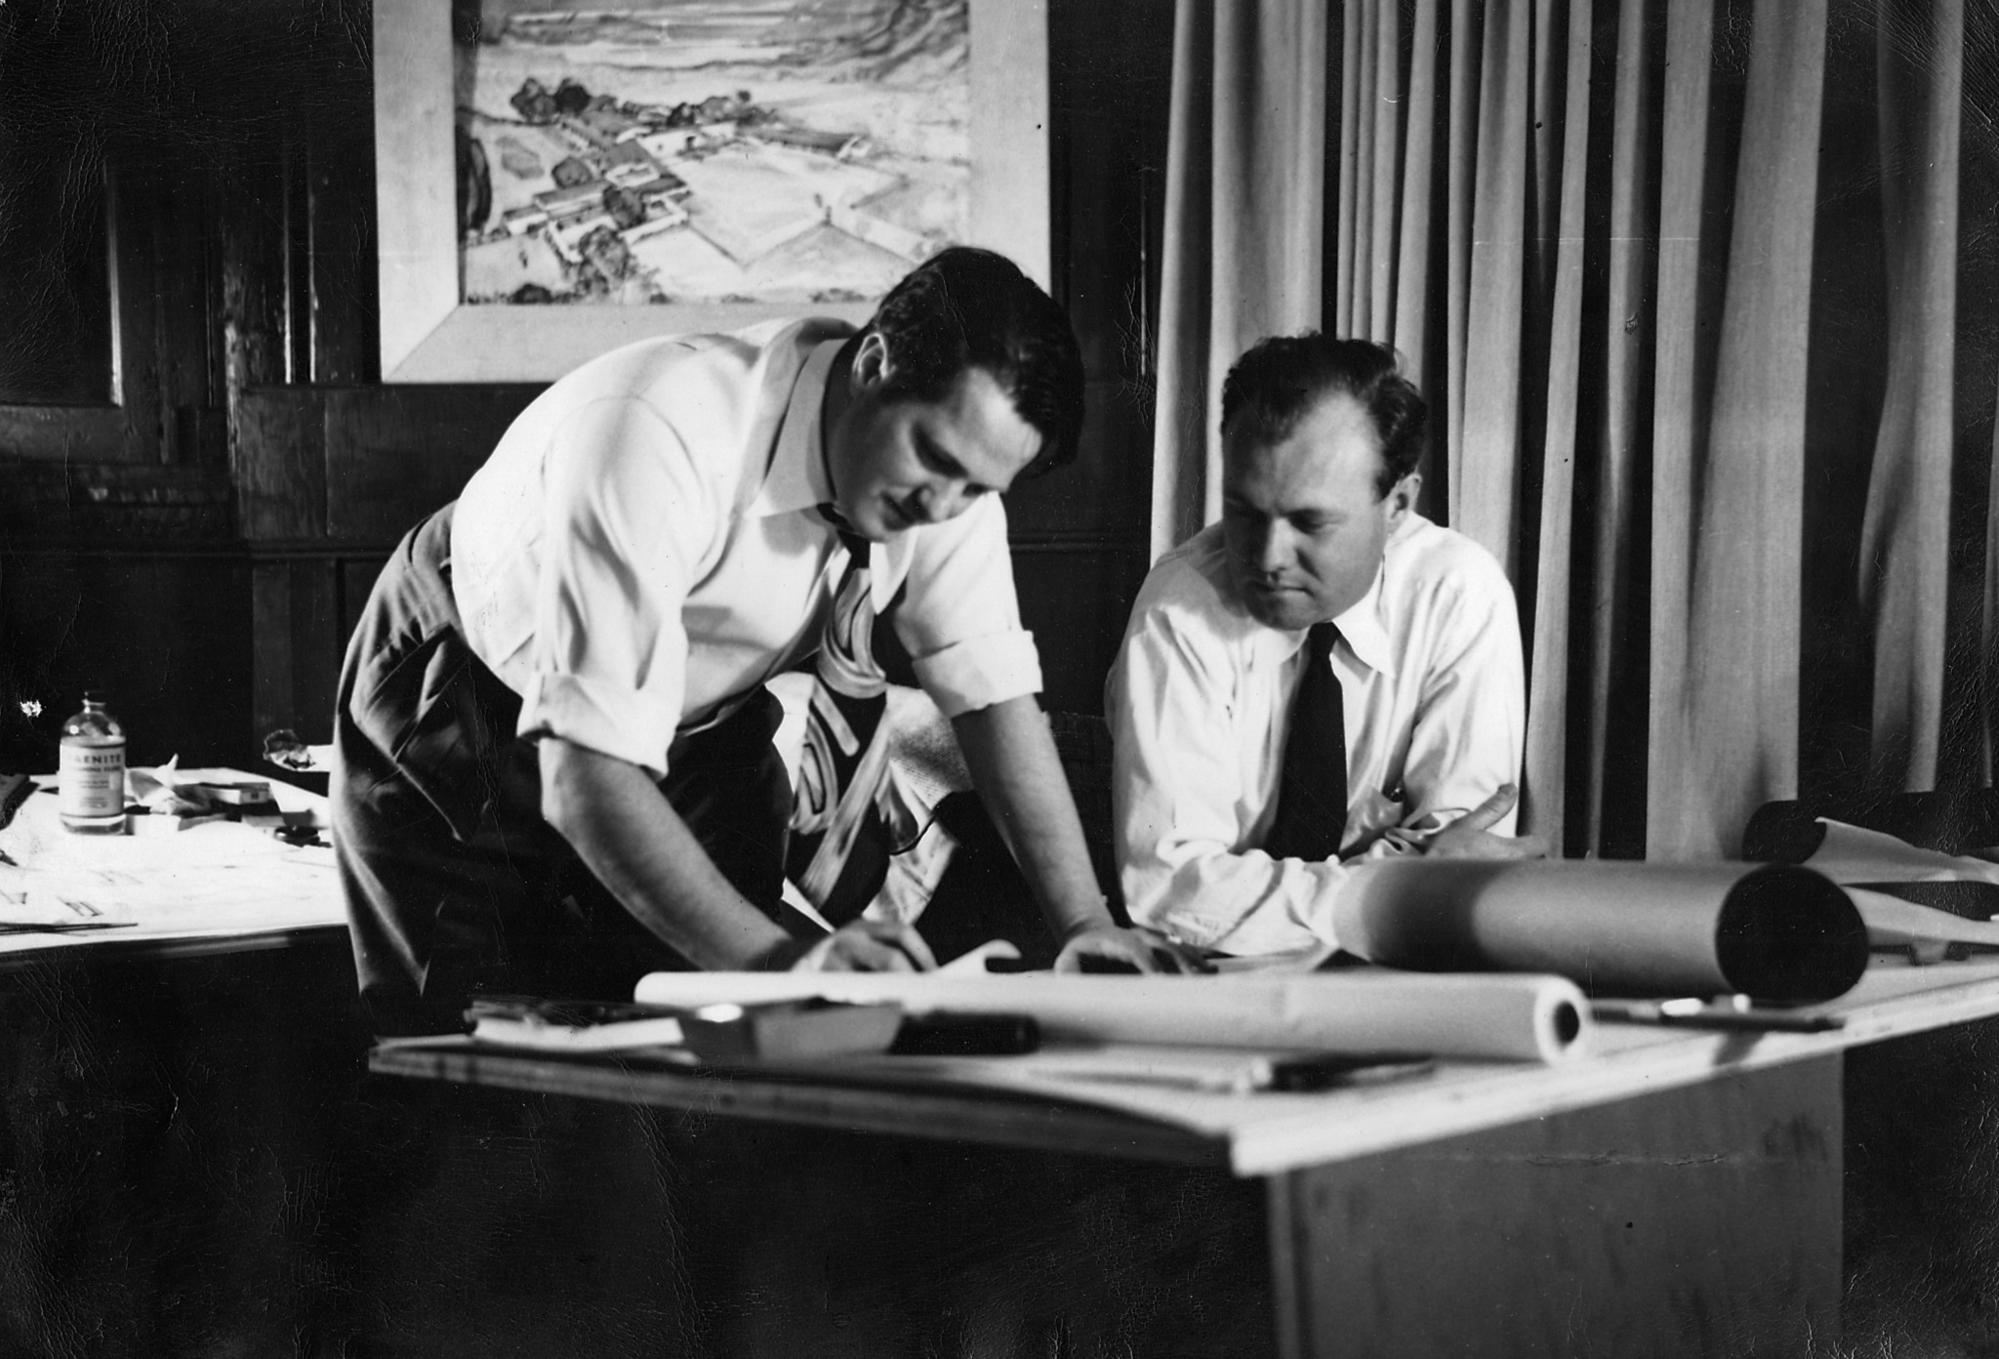 An undated photo of William F. Cody, left, with an associate in Cody's L.A. office on Santa Monica Boulevard.